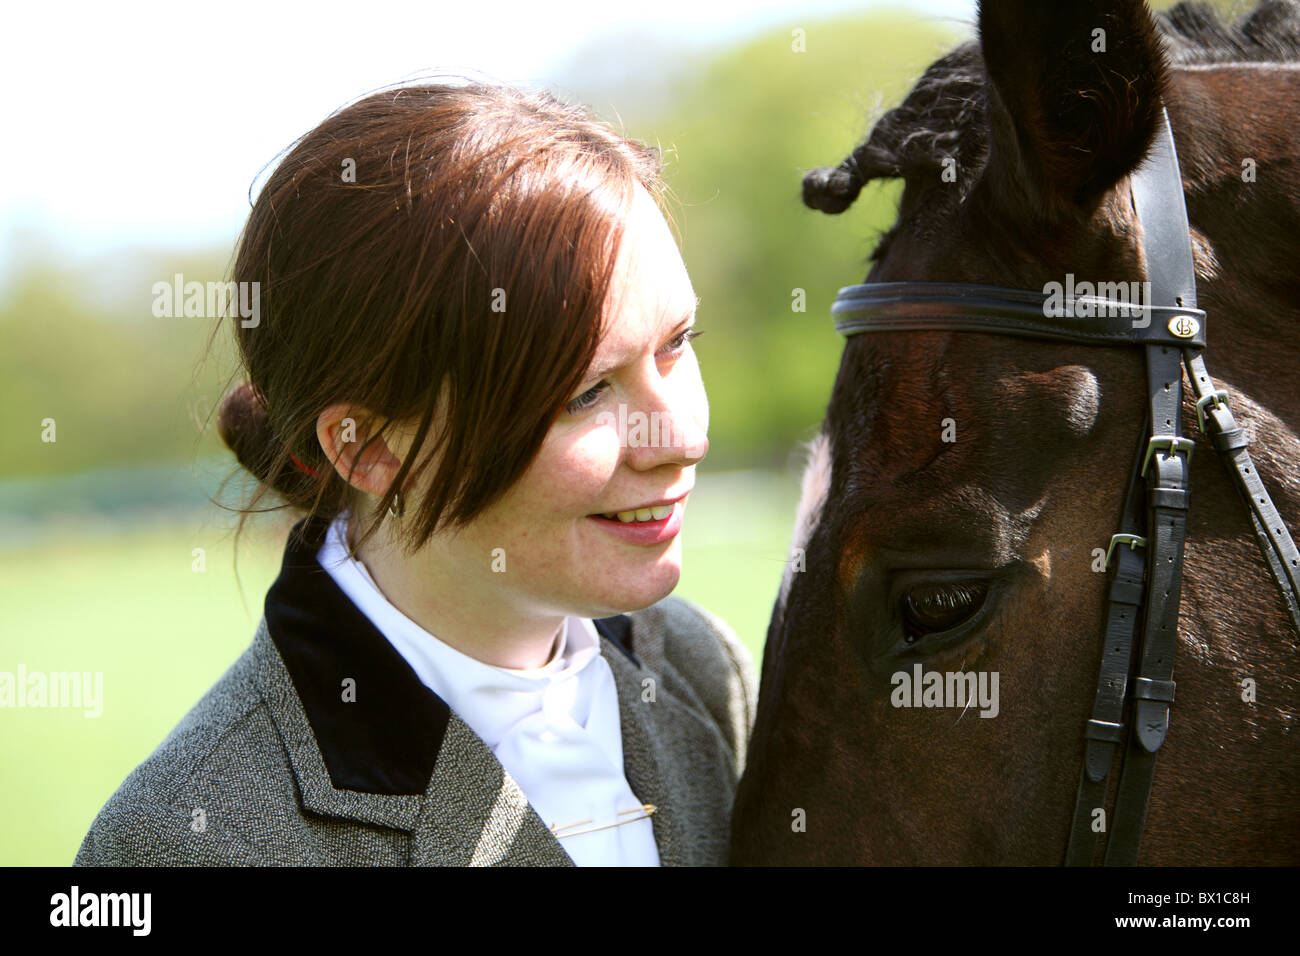 rider and horse Scotland UK head to head touching - Stock Image